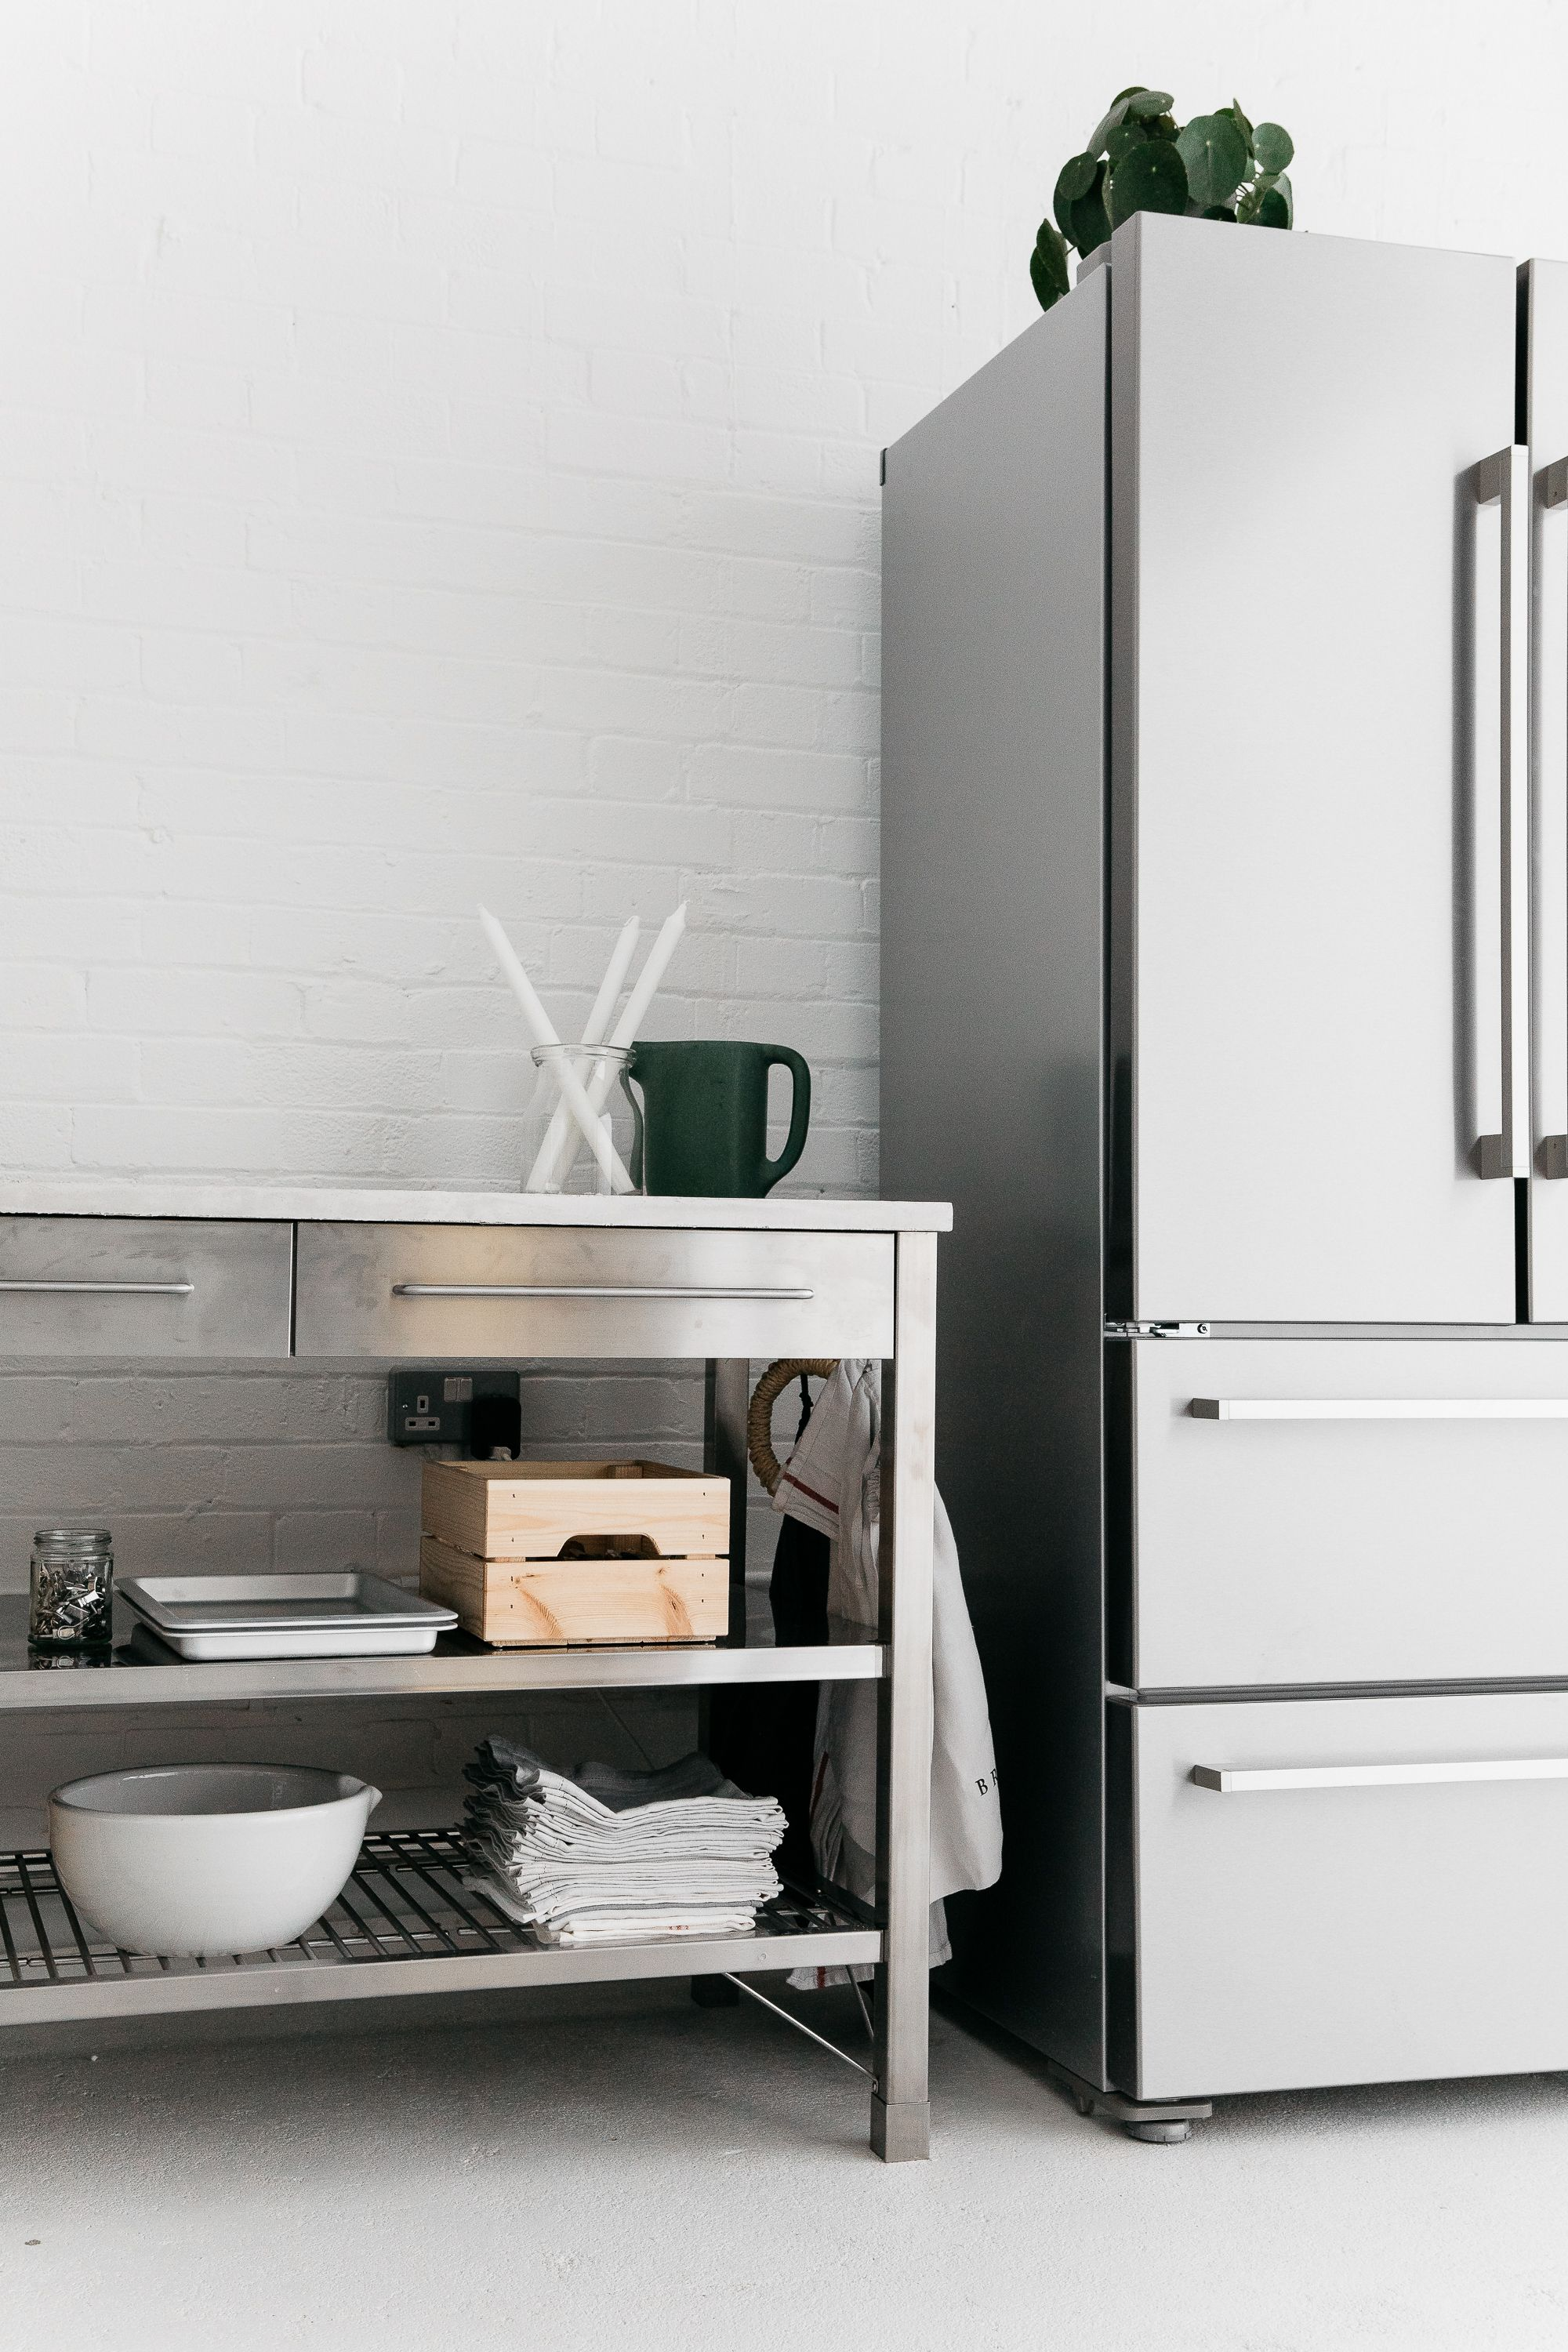 Kitchen of the Week: An Artful Ikea Hack Kitchen by Two London ...